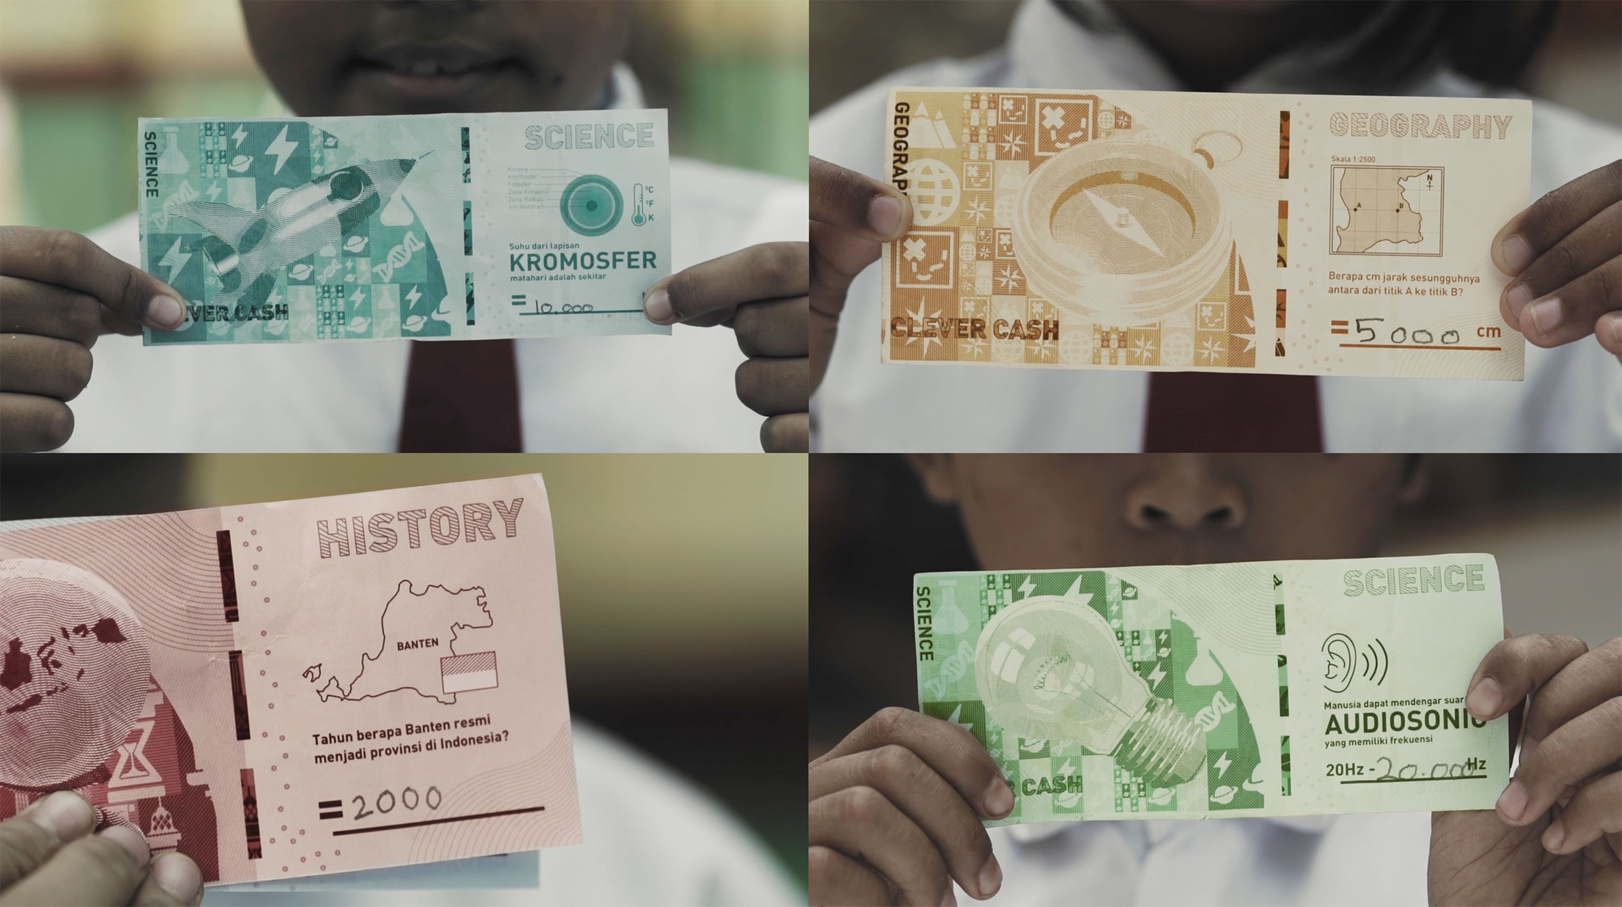 Hakuhodo Indonesia wins country's first ever D&AD Graphite Pencil for Clever Cash campaign